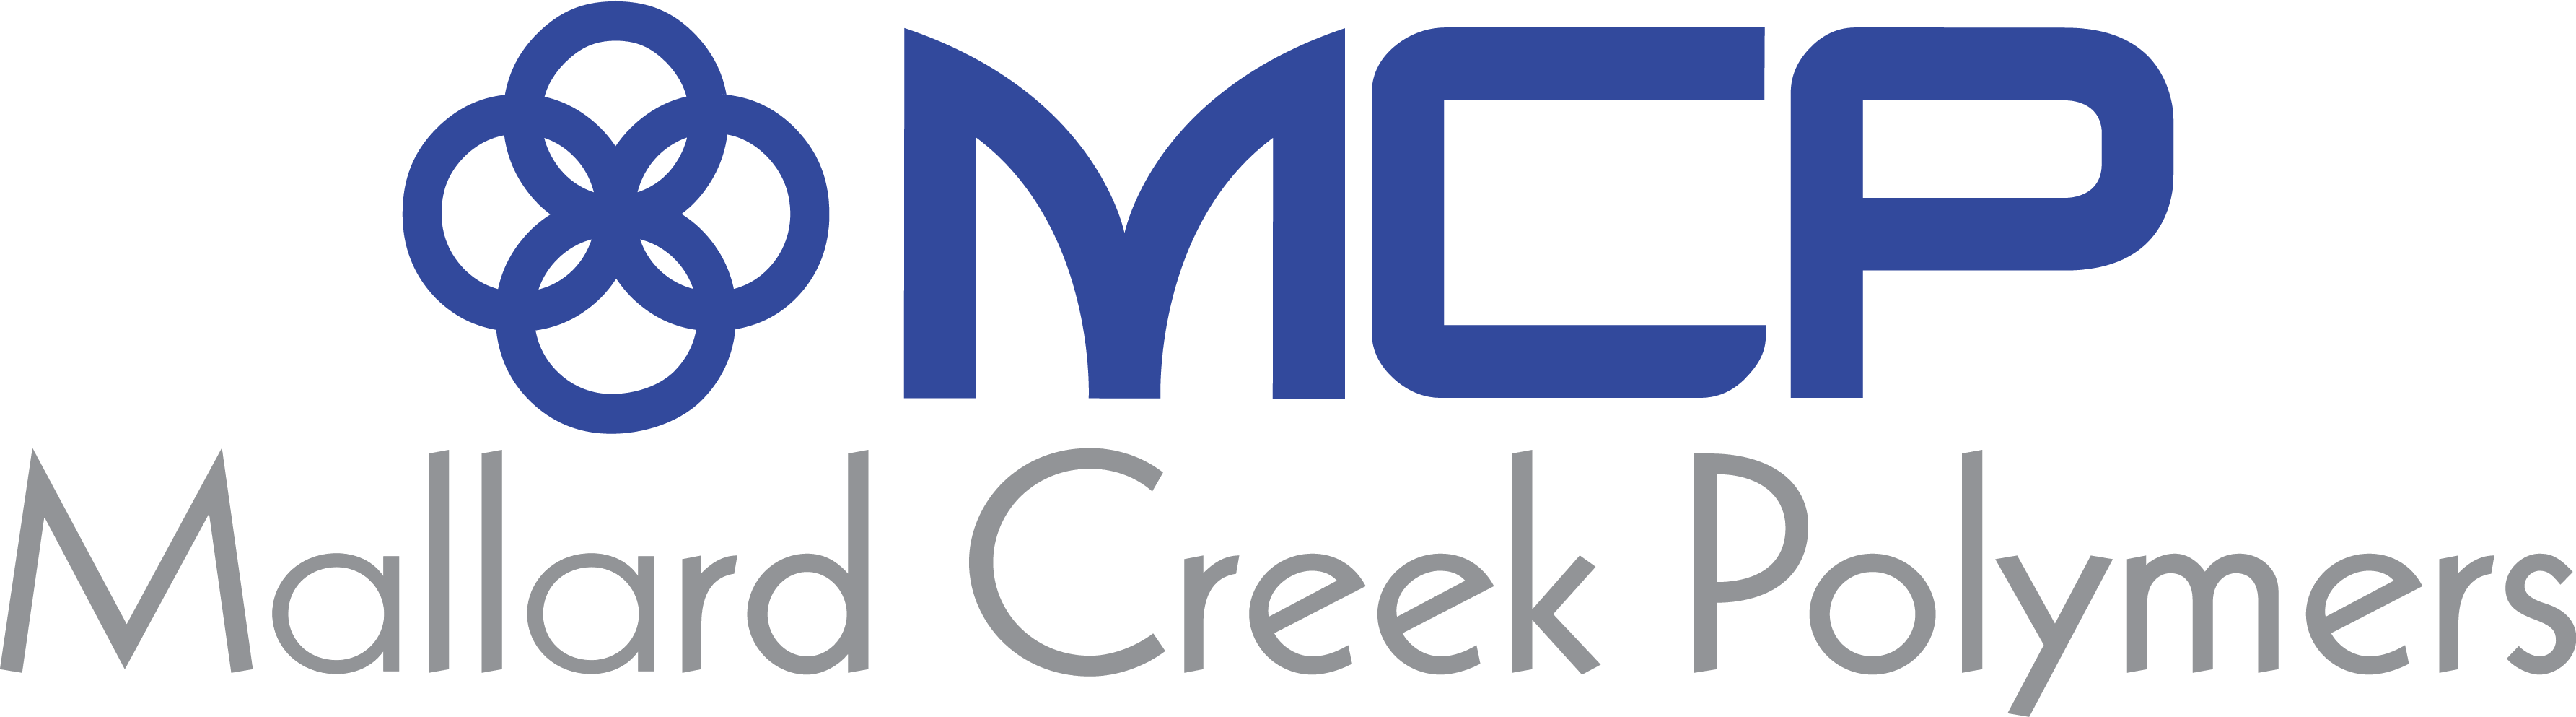 MCP_New_Stacked_Logo_2016-01.png